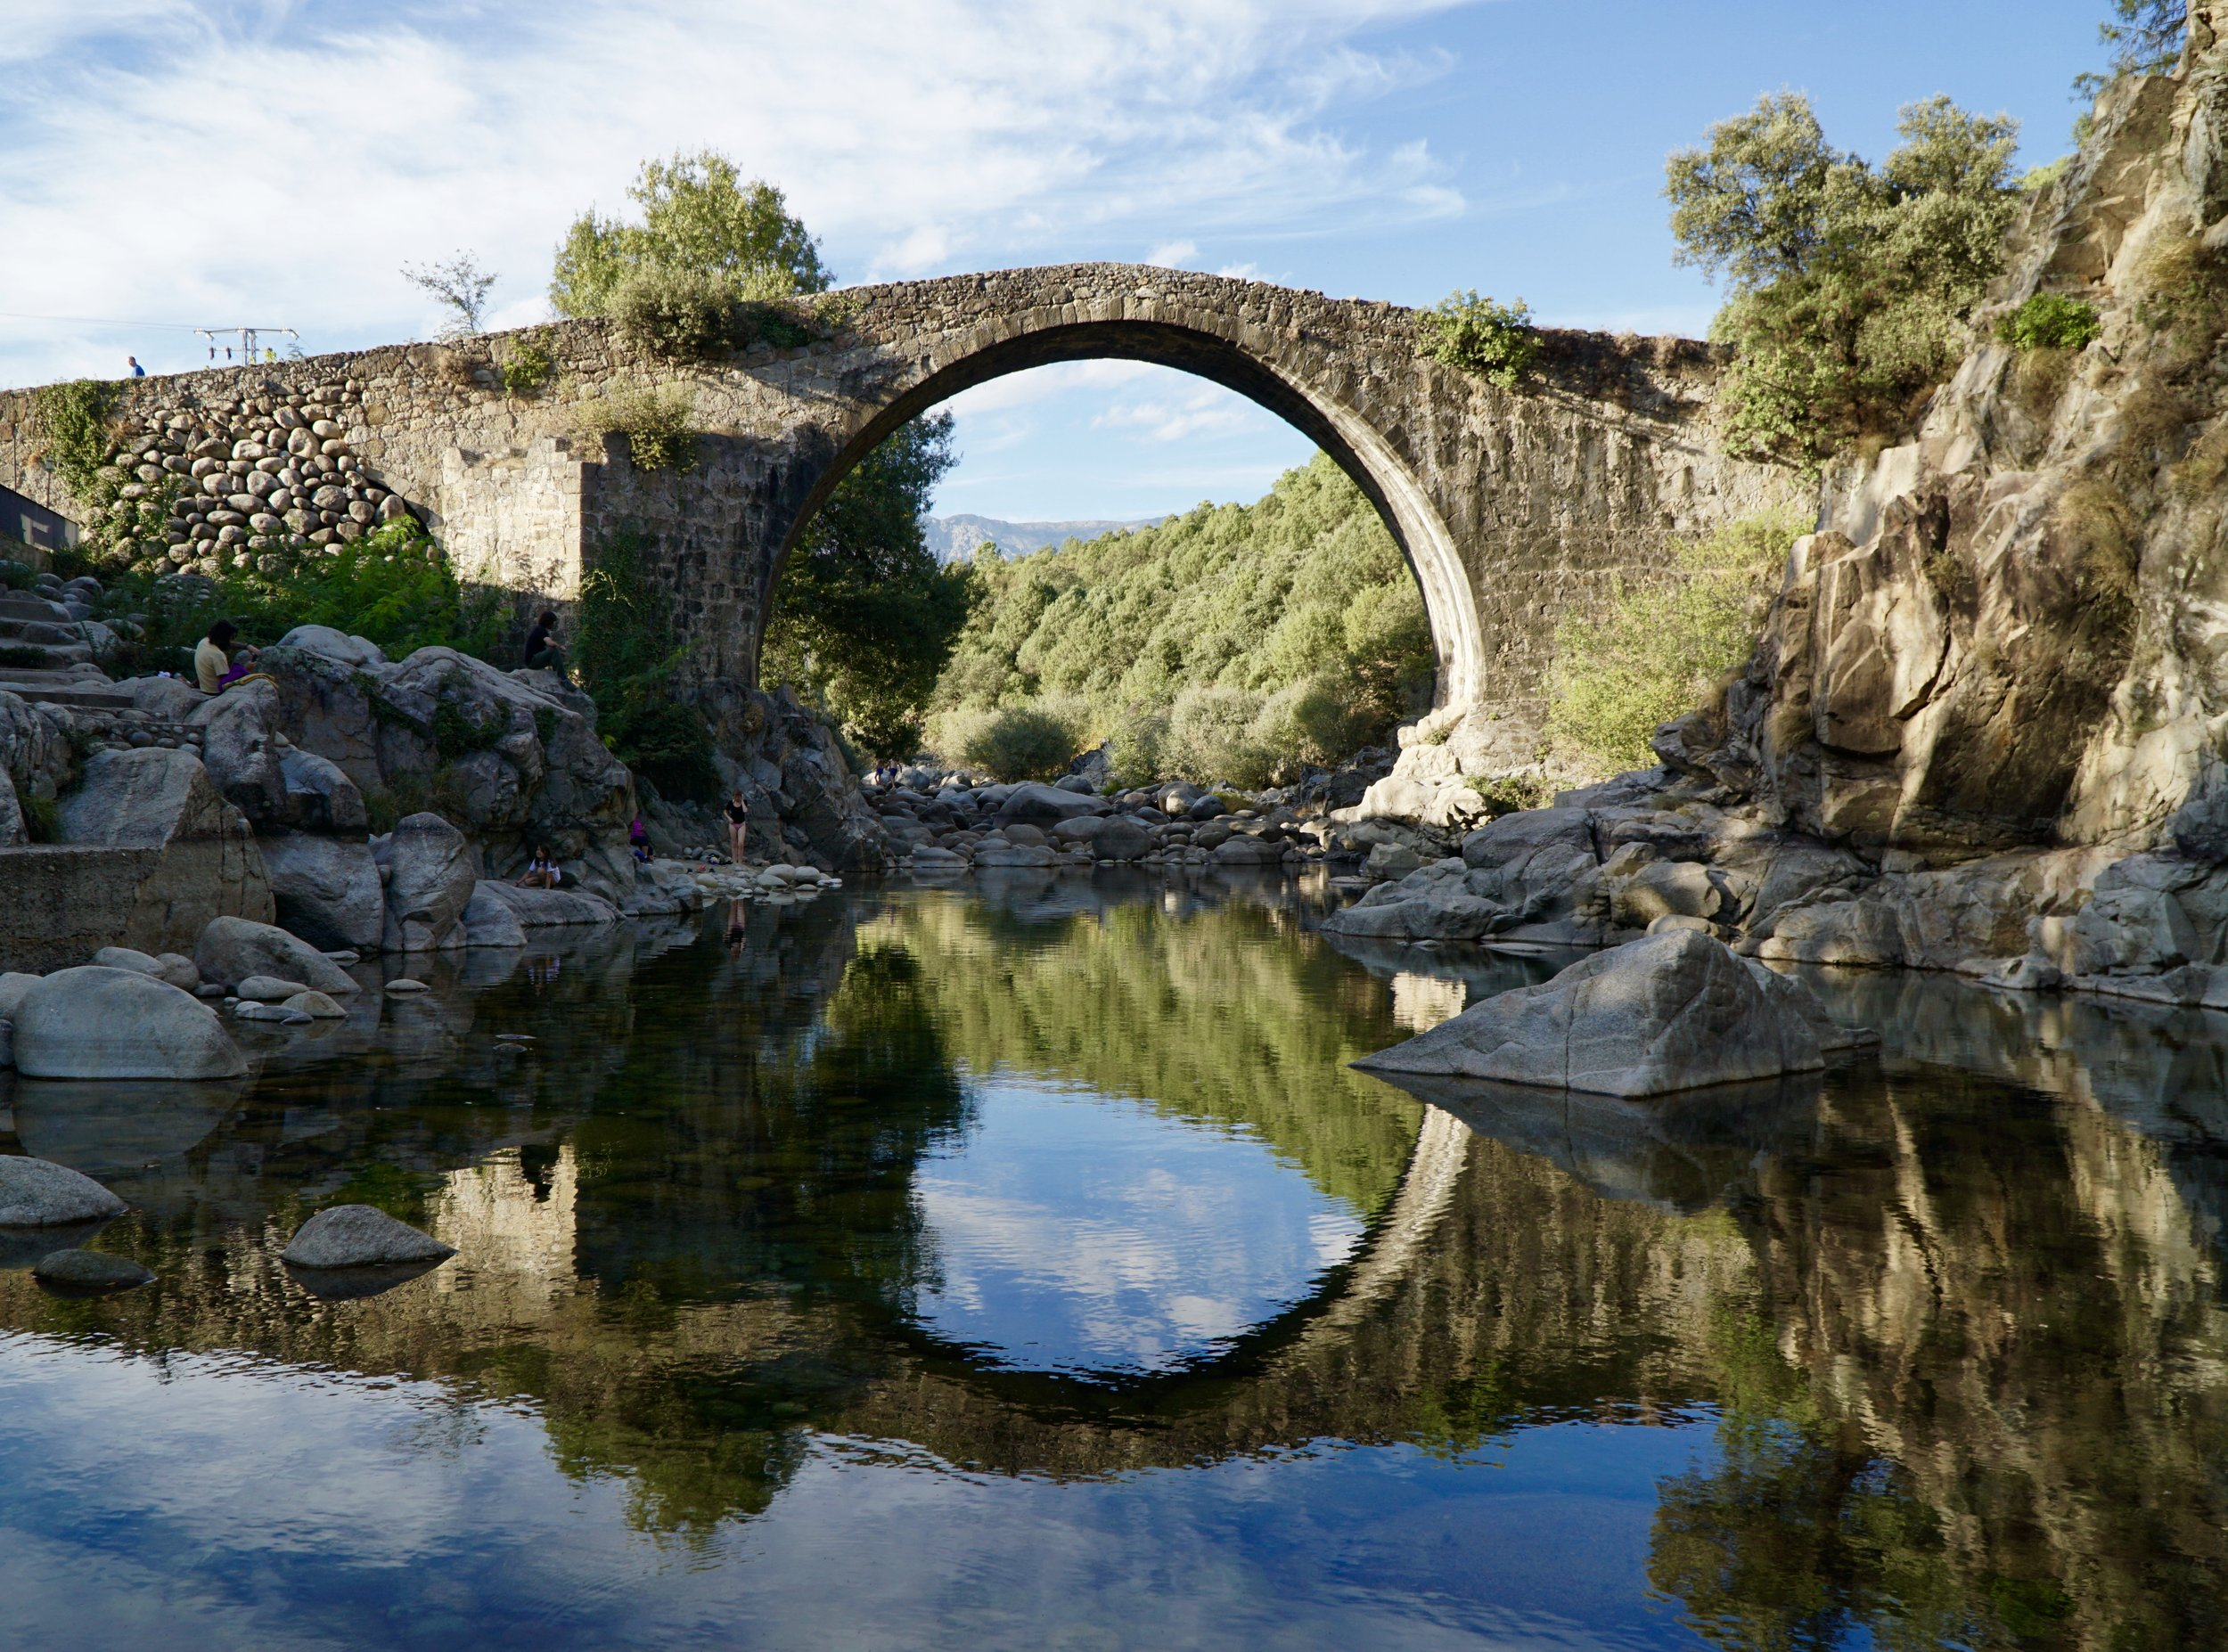 The Puente Romano at Madrigal